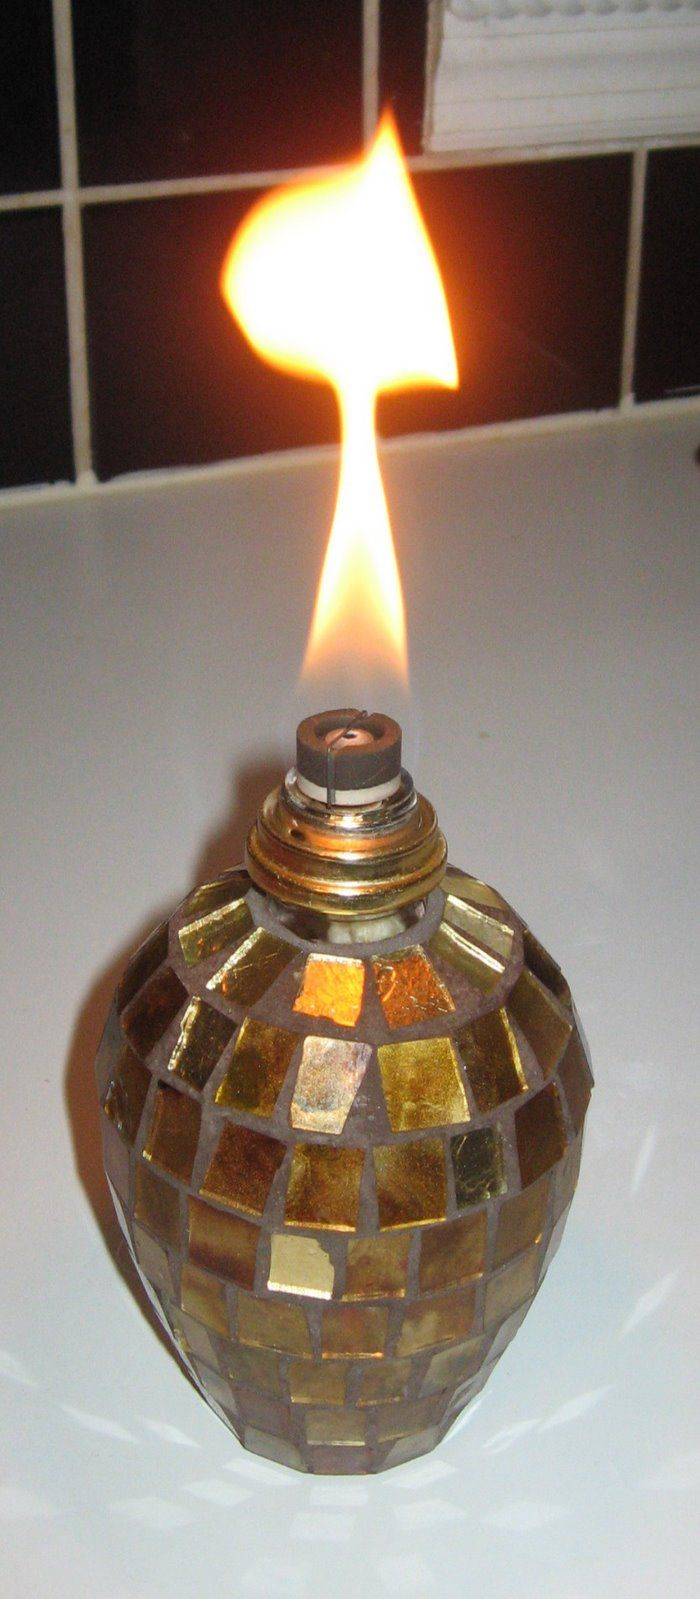 Effusion Lamps And How They Can Scent Your Home I Admit It I Am A Scent Hound I Have Spent Too Much Mon Lamp Thrifty Decor Diy Fragrance Oil